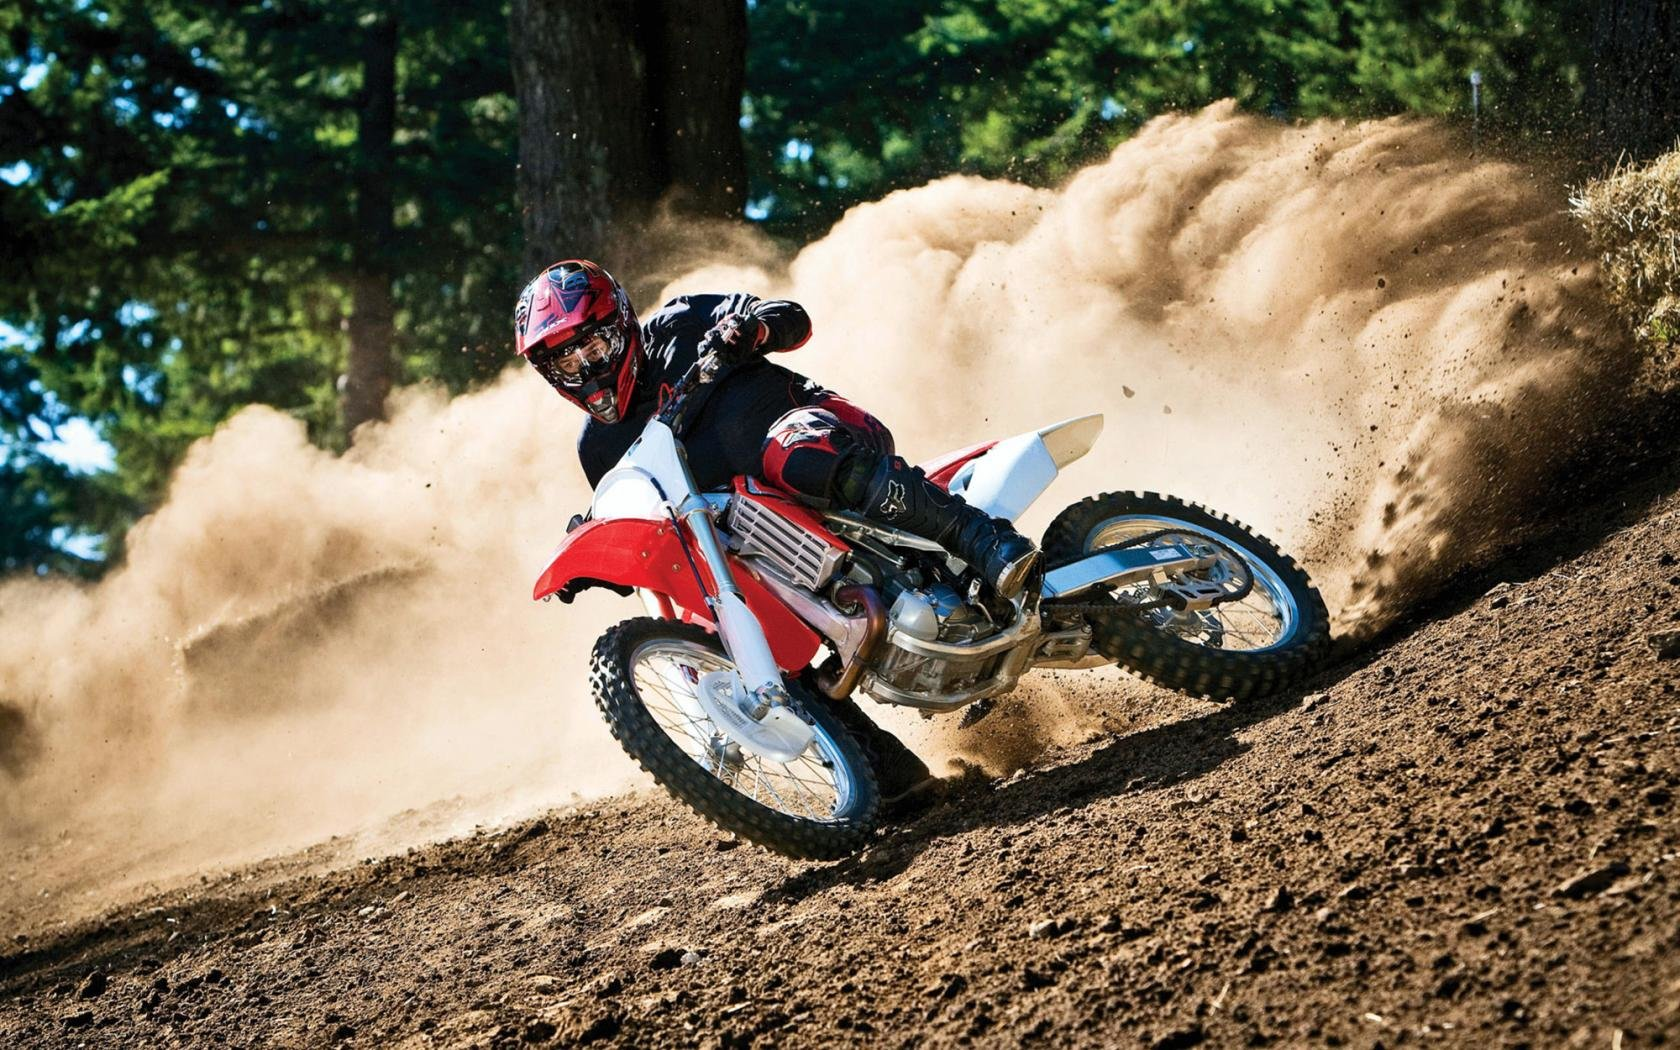 Motocross Dirt Bike Wallpapers 1680x1050 Desktop Backgrounds